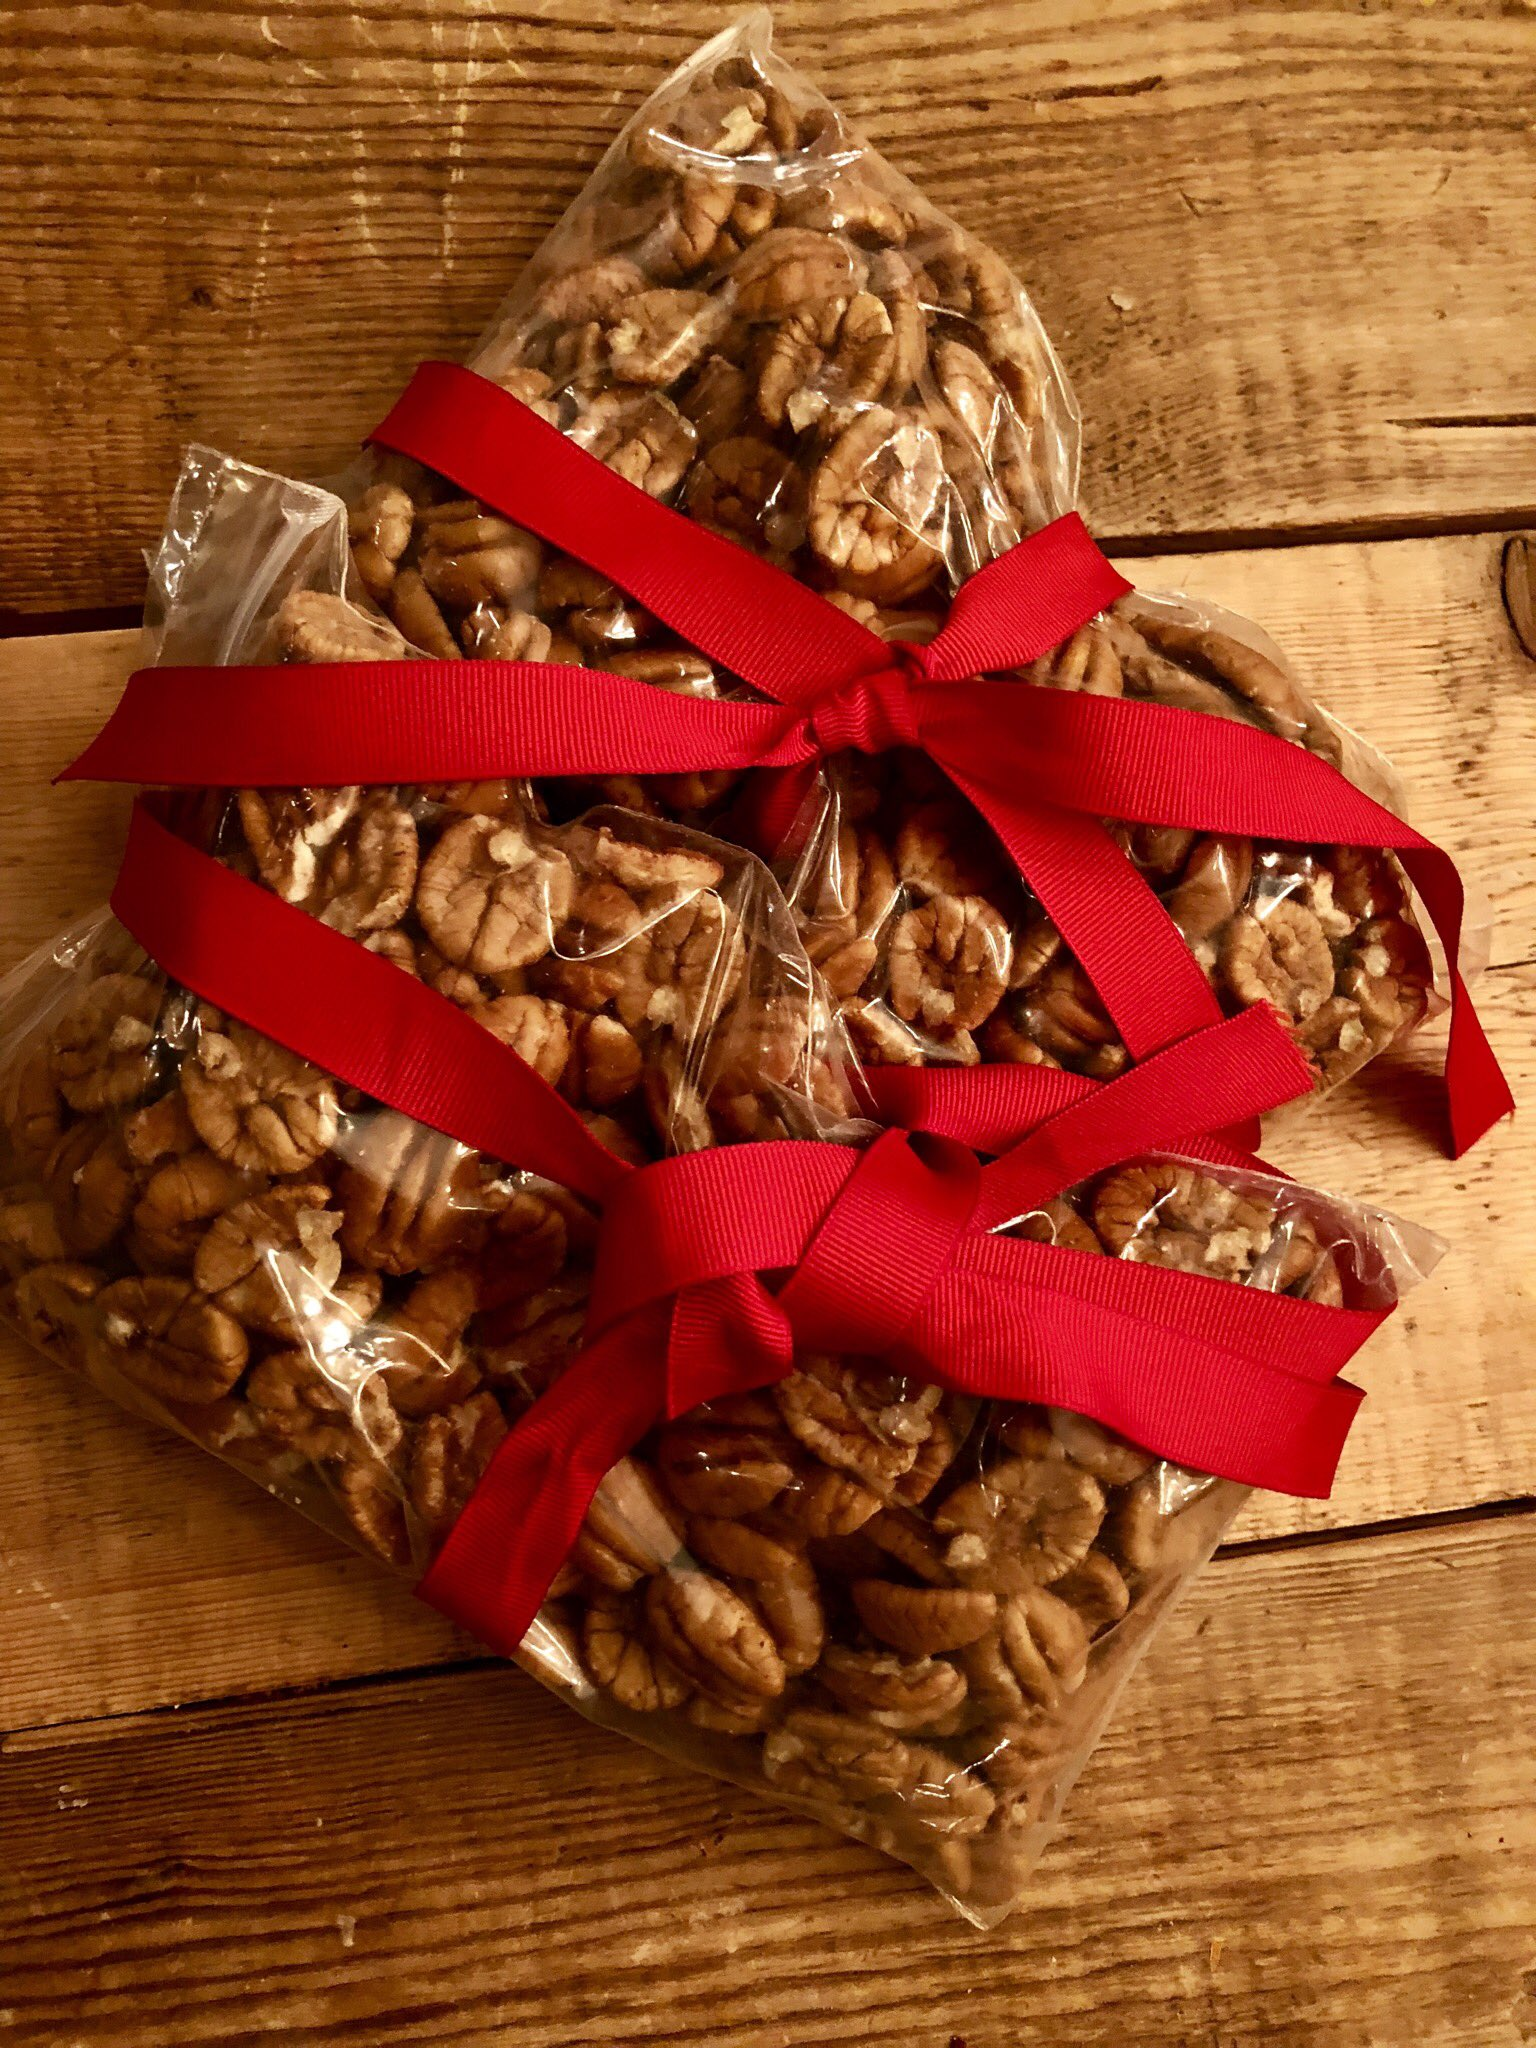 Thanks to @VP Chief of Staff @Nick_Ayers for supplying the pecans from his family farm in Georgia #piegate https://t.co/Lx7LpMwF4V